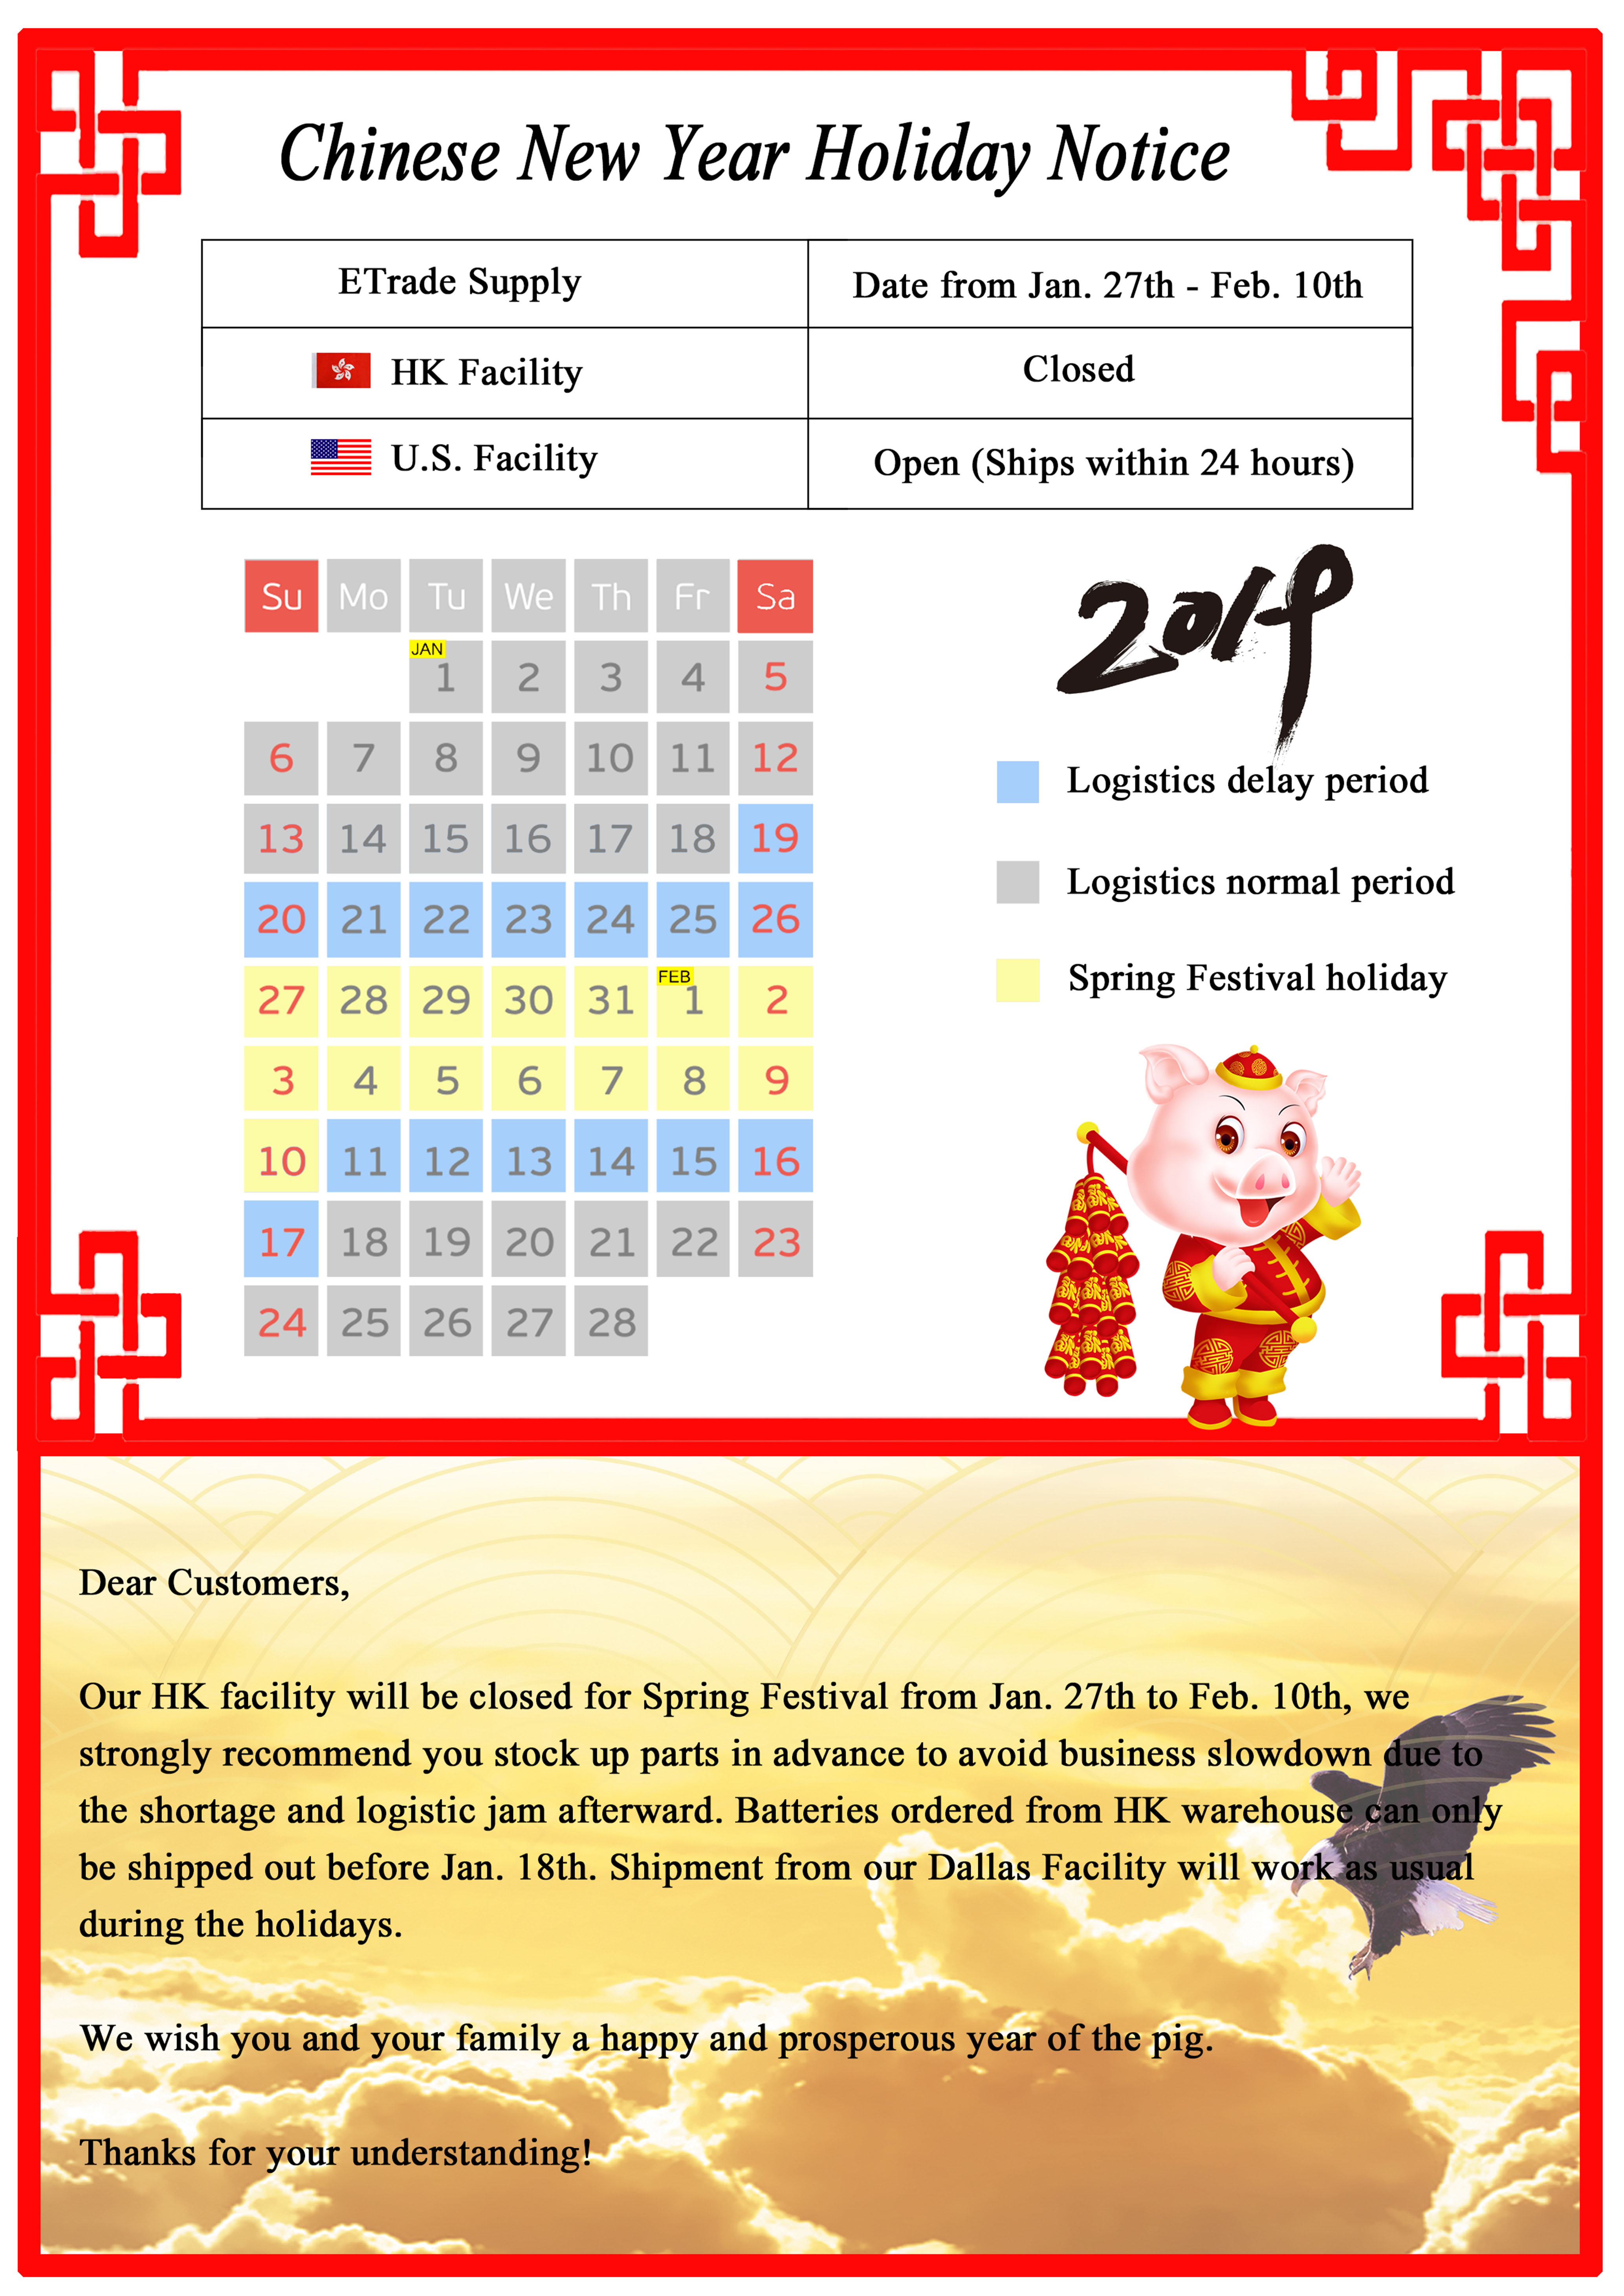 ETrade Supply 2019 Chinese New Year Holiday Notice